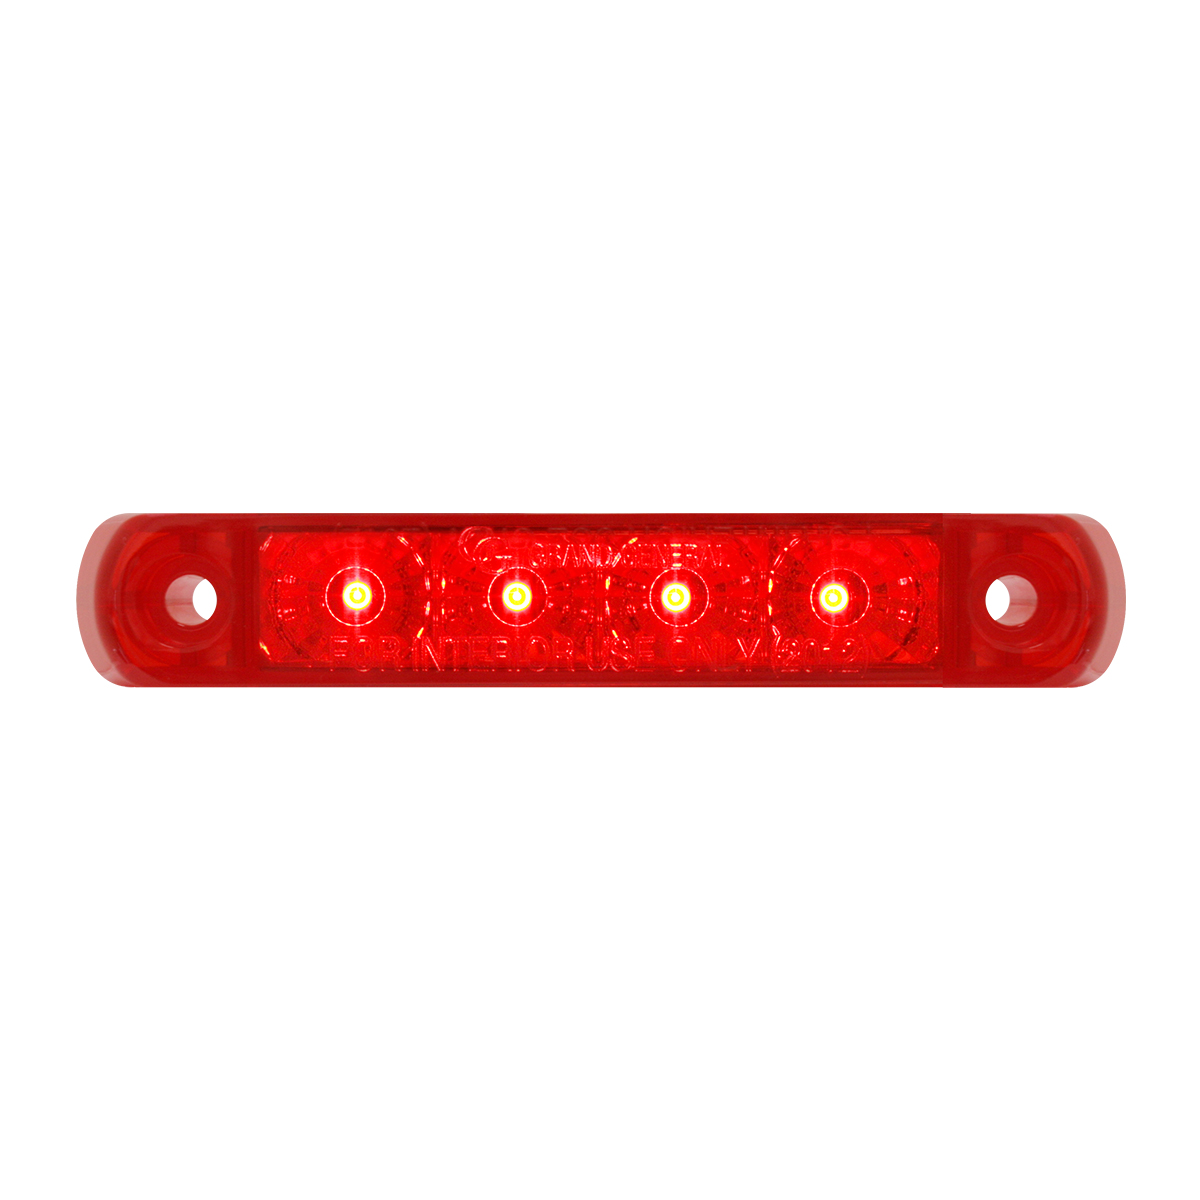 76082 Surface Mount Dual Function LED Light in Red/Red